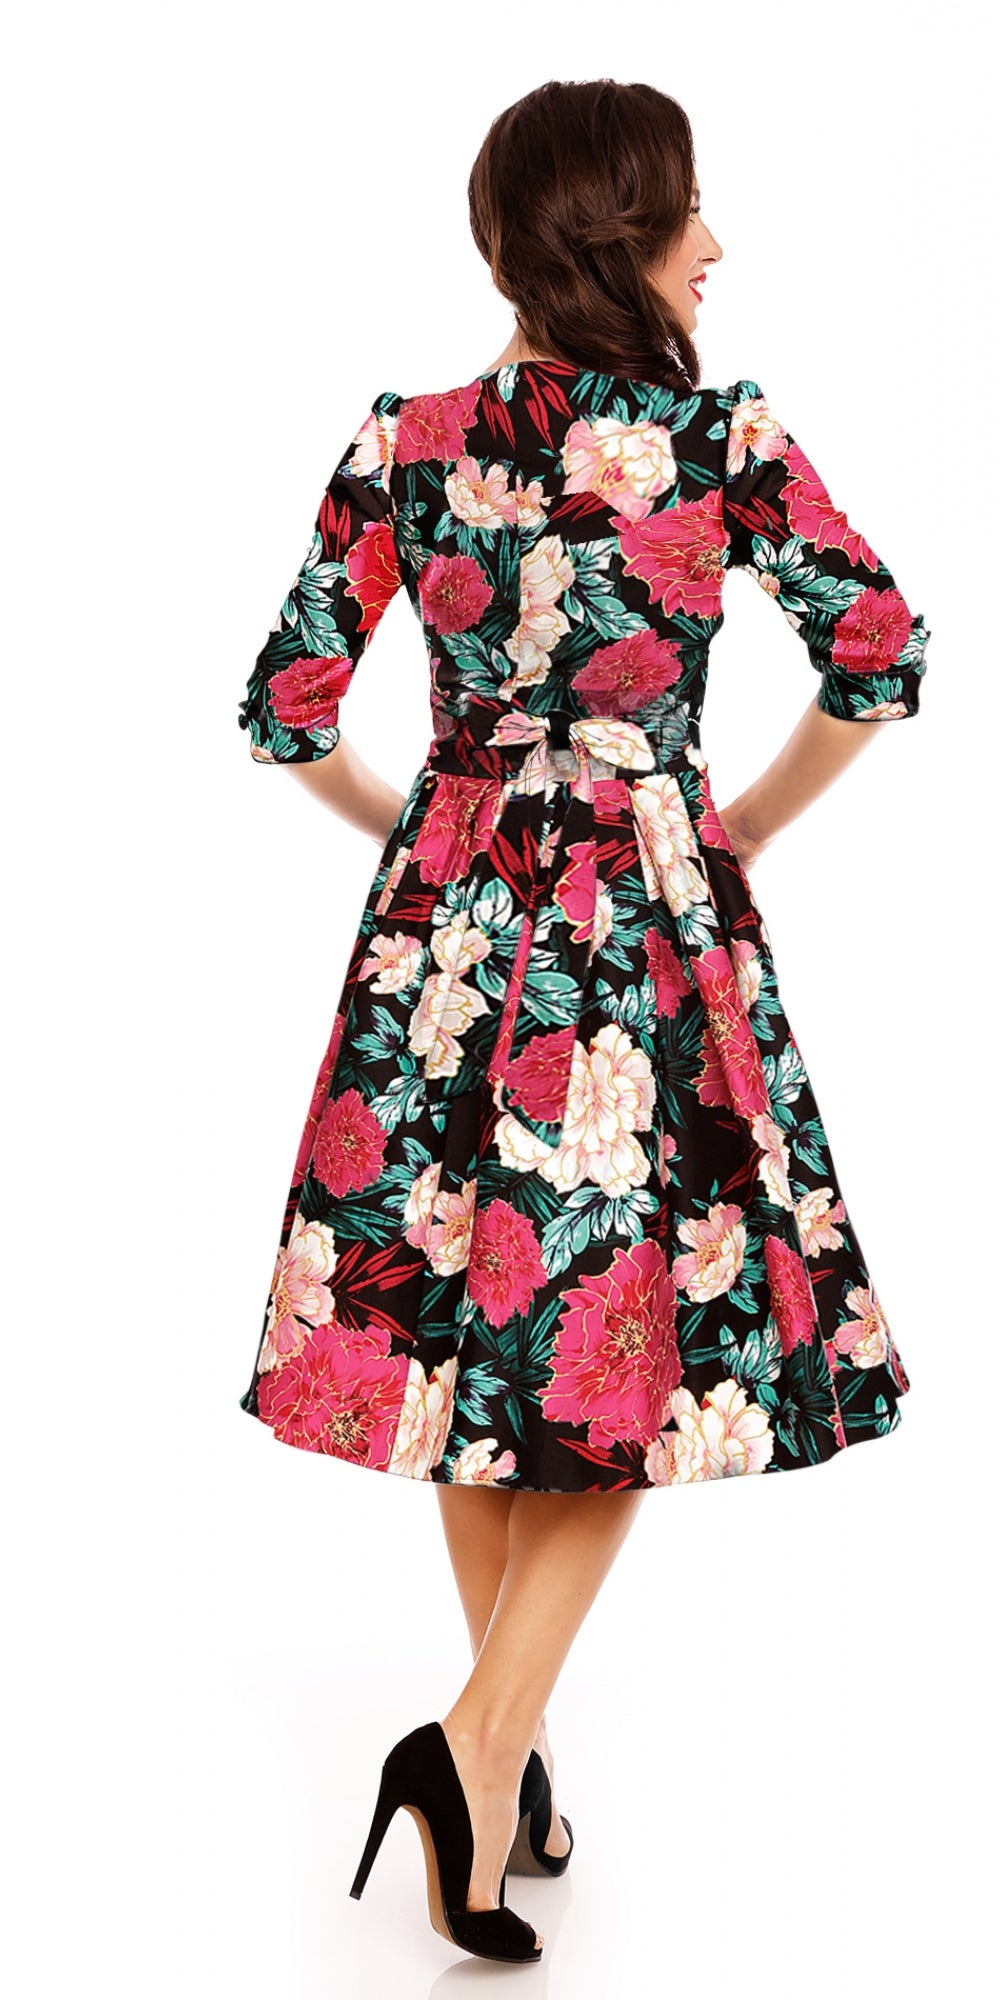 Katherine Swing Dress 3/4 Sleeves Pink/Gold Floral